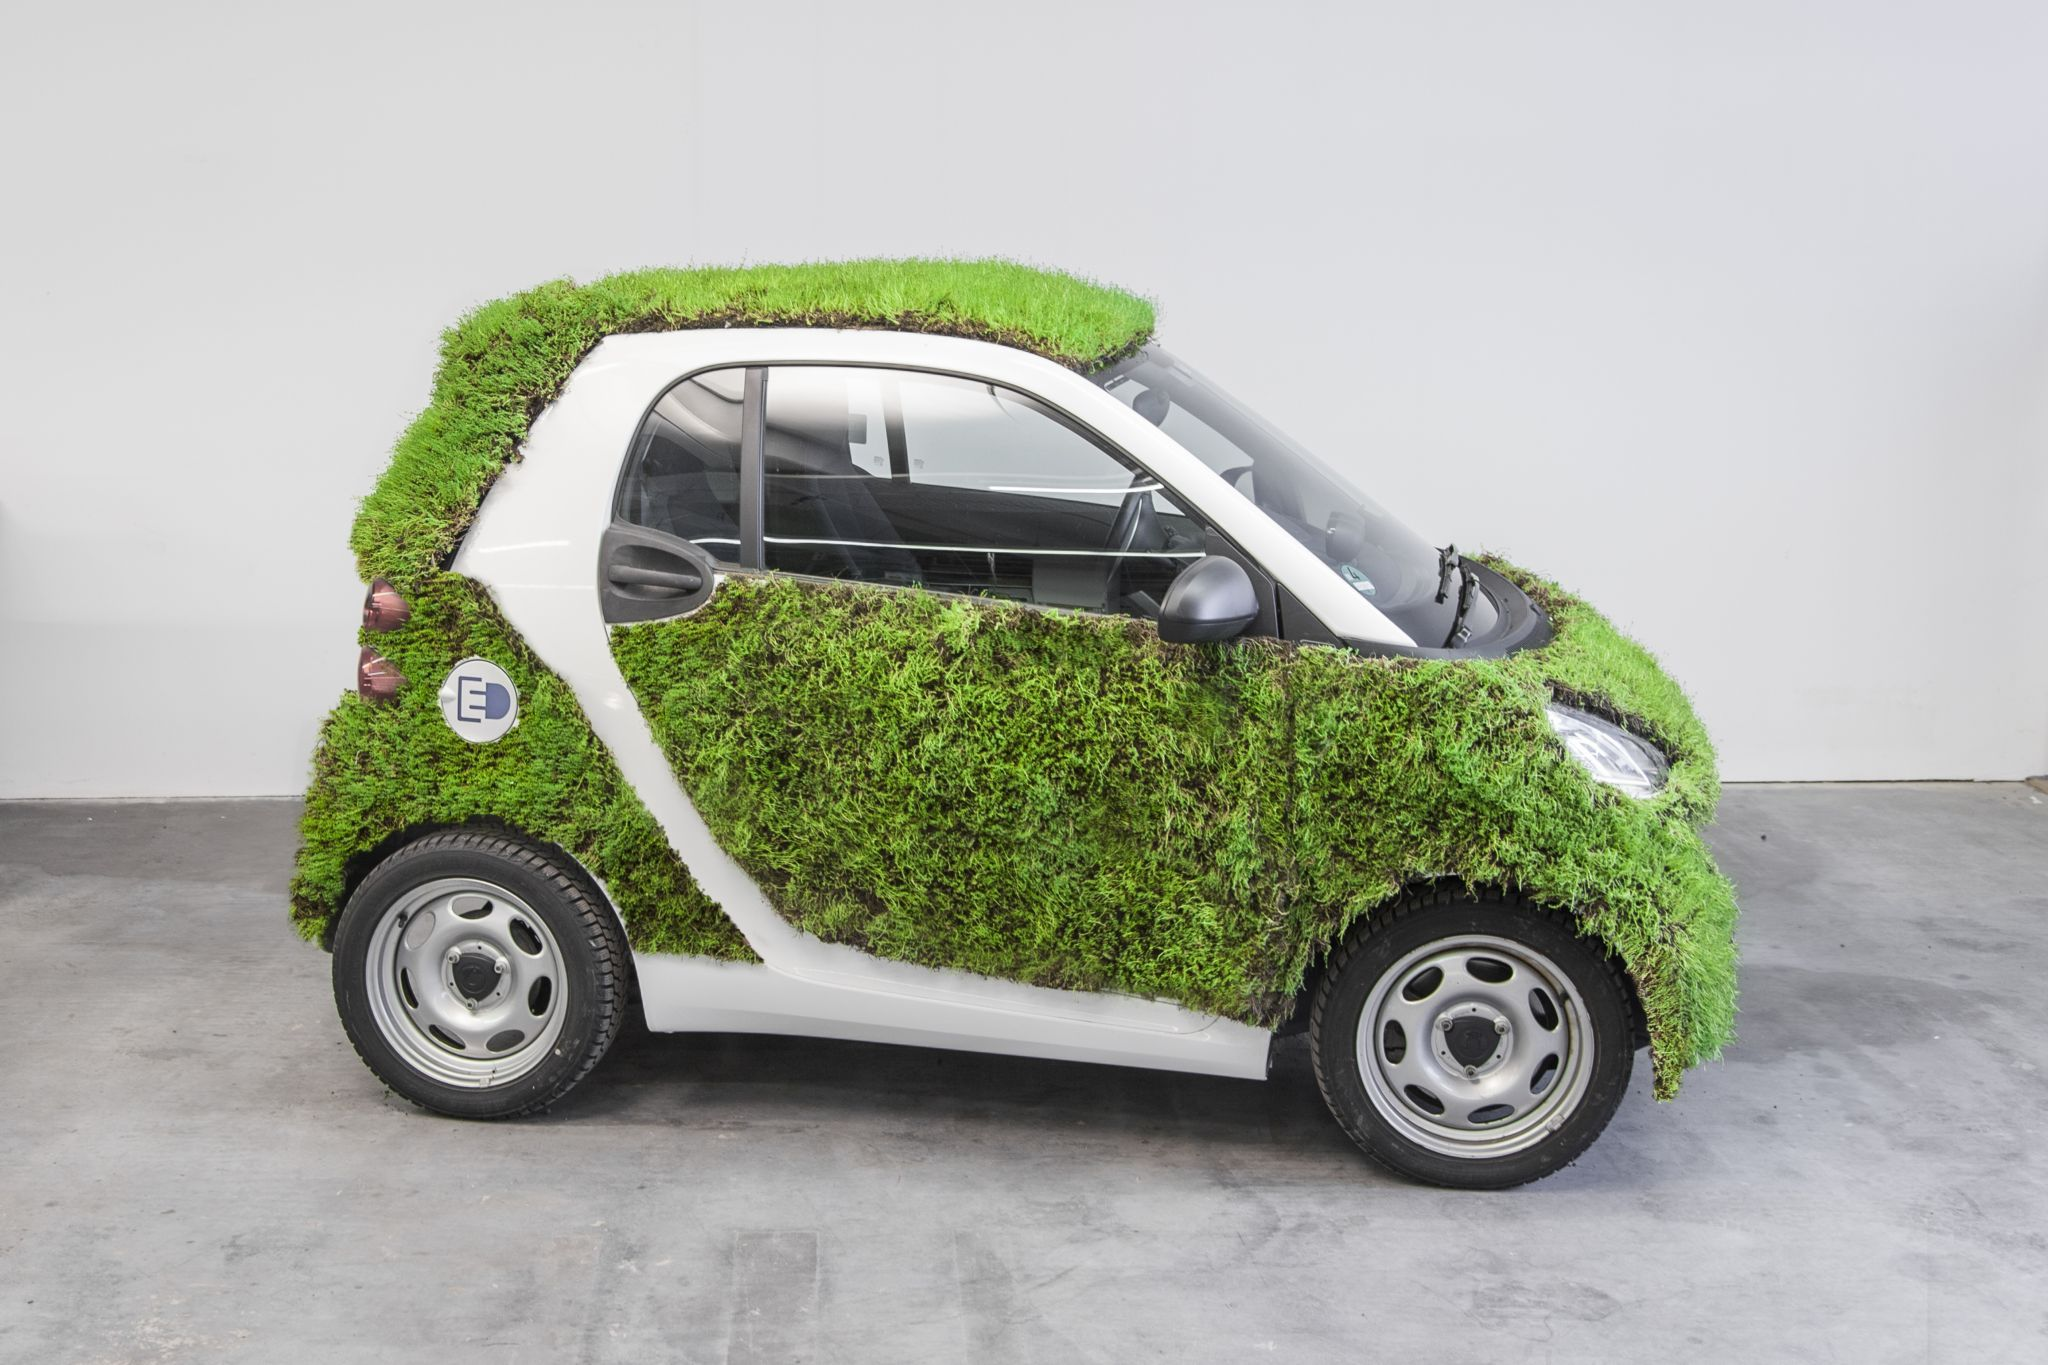 smart-fortwo-takes-the-green-car-thing-a-bit-too-literally_1